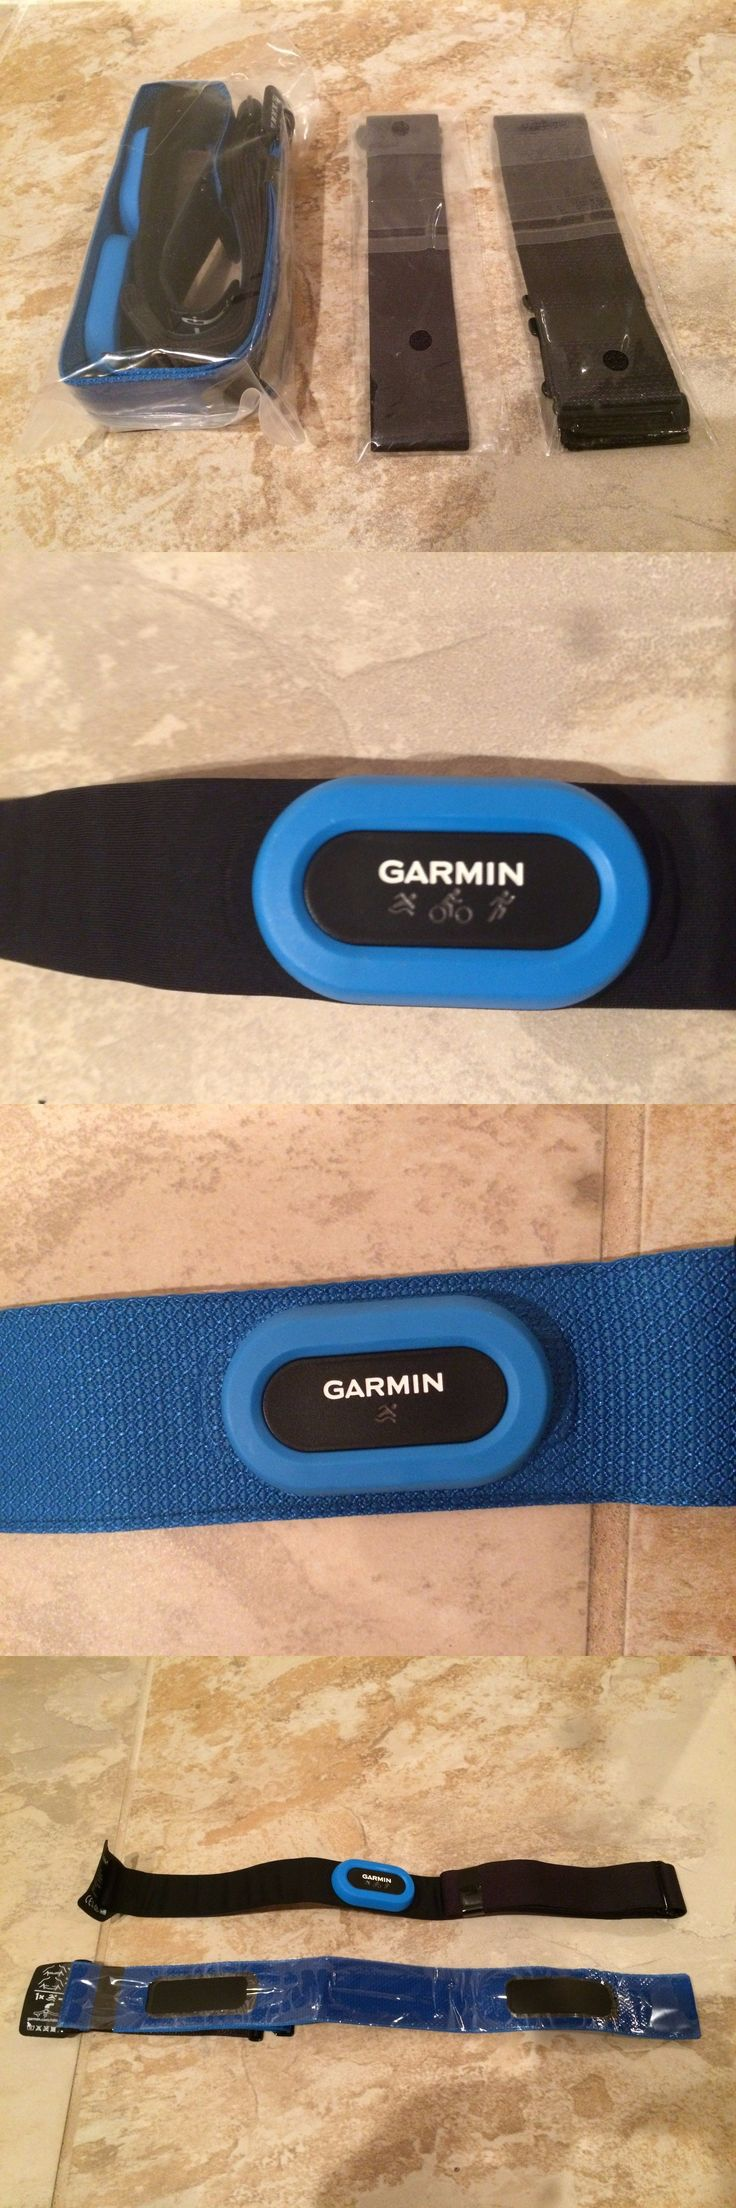 Heart Rate Monitors 15277: Garmin Hrm-Tri And Hrm-Swim Accessory Bundle Heart Rate Monitor 010-11254-03 New -> BUY IT NOW ONLY: $175 on eBay!